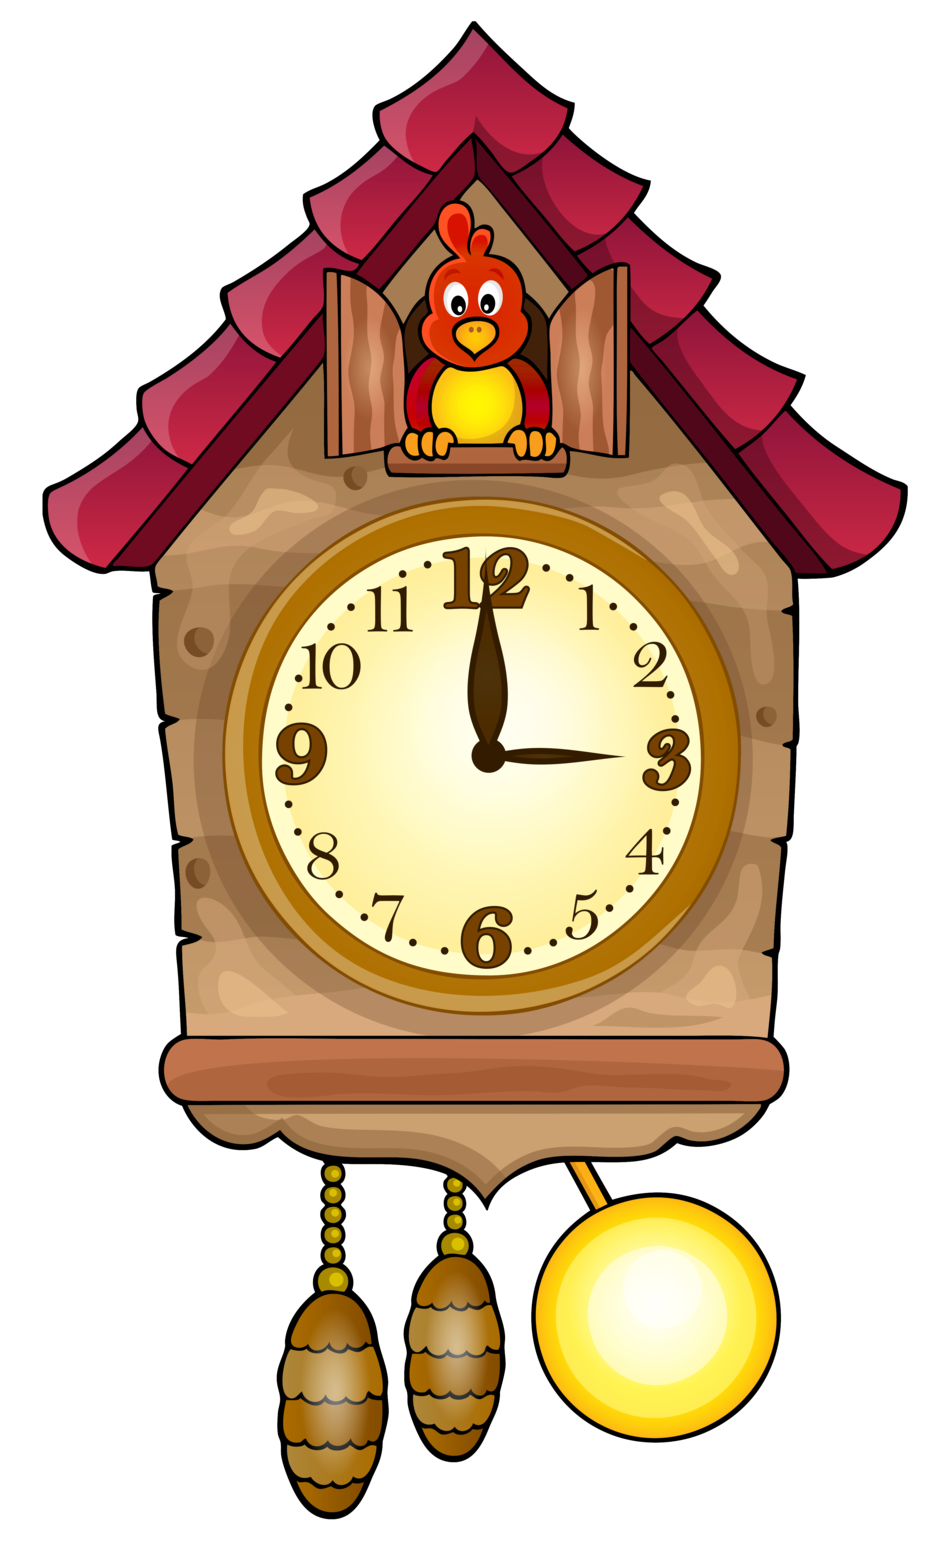 Cute cuckoo clock png. Clocks clipart old fashioned